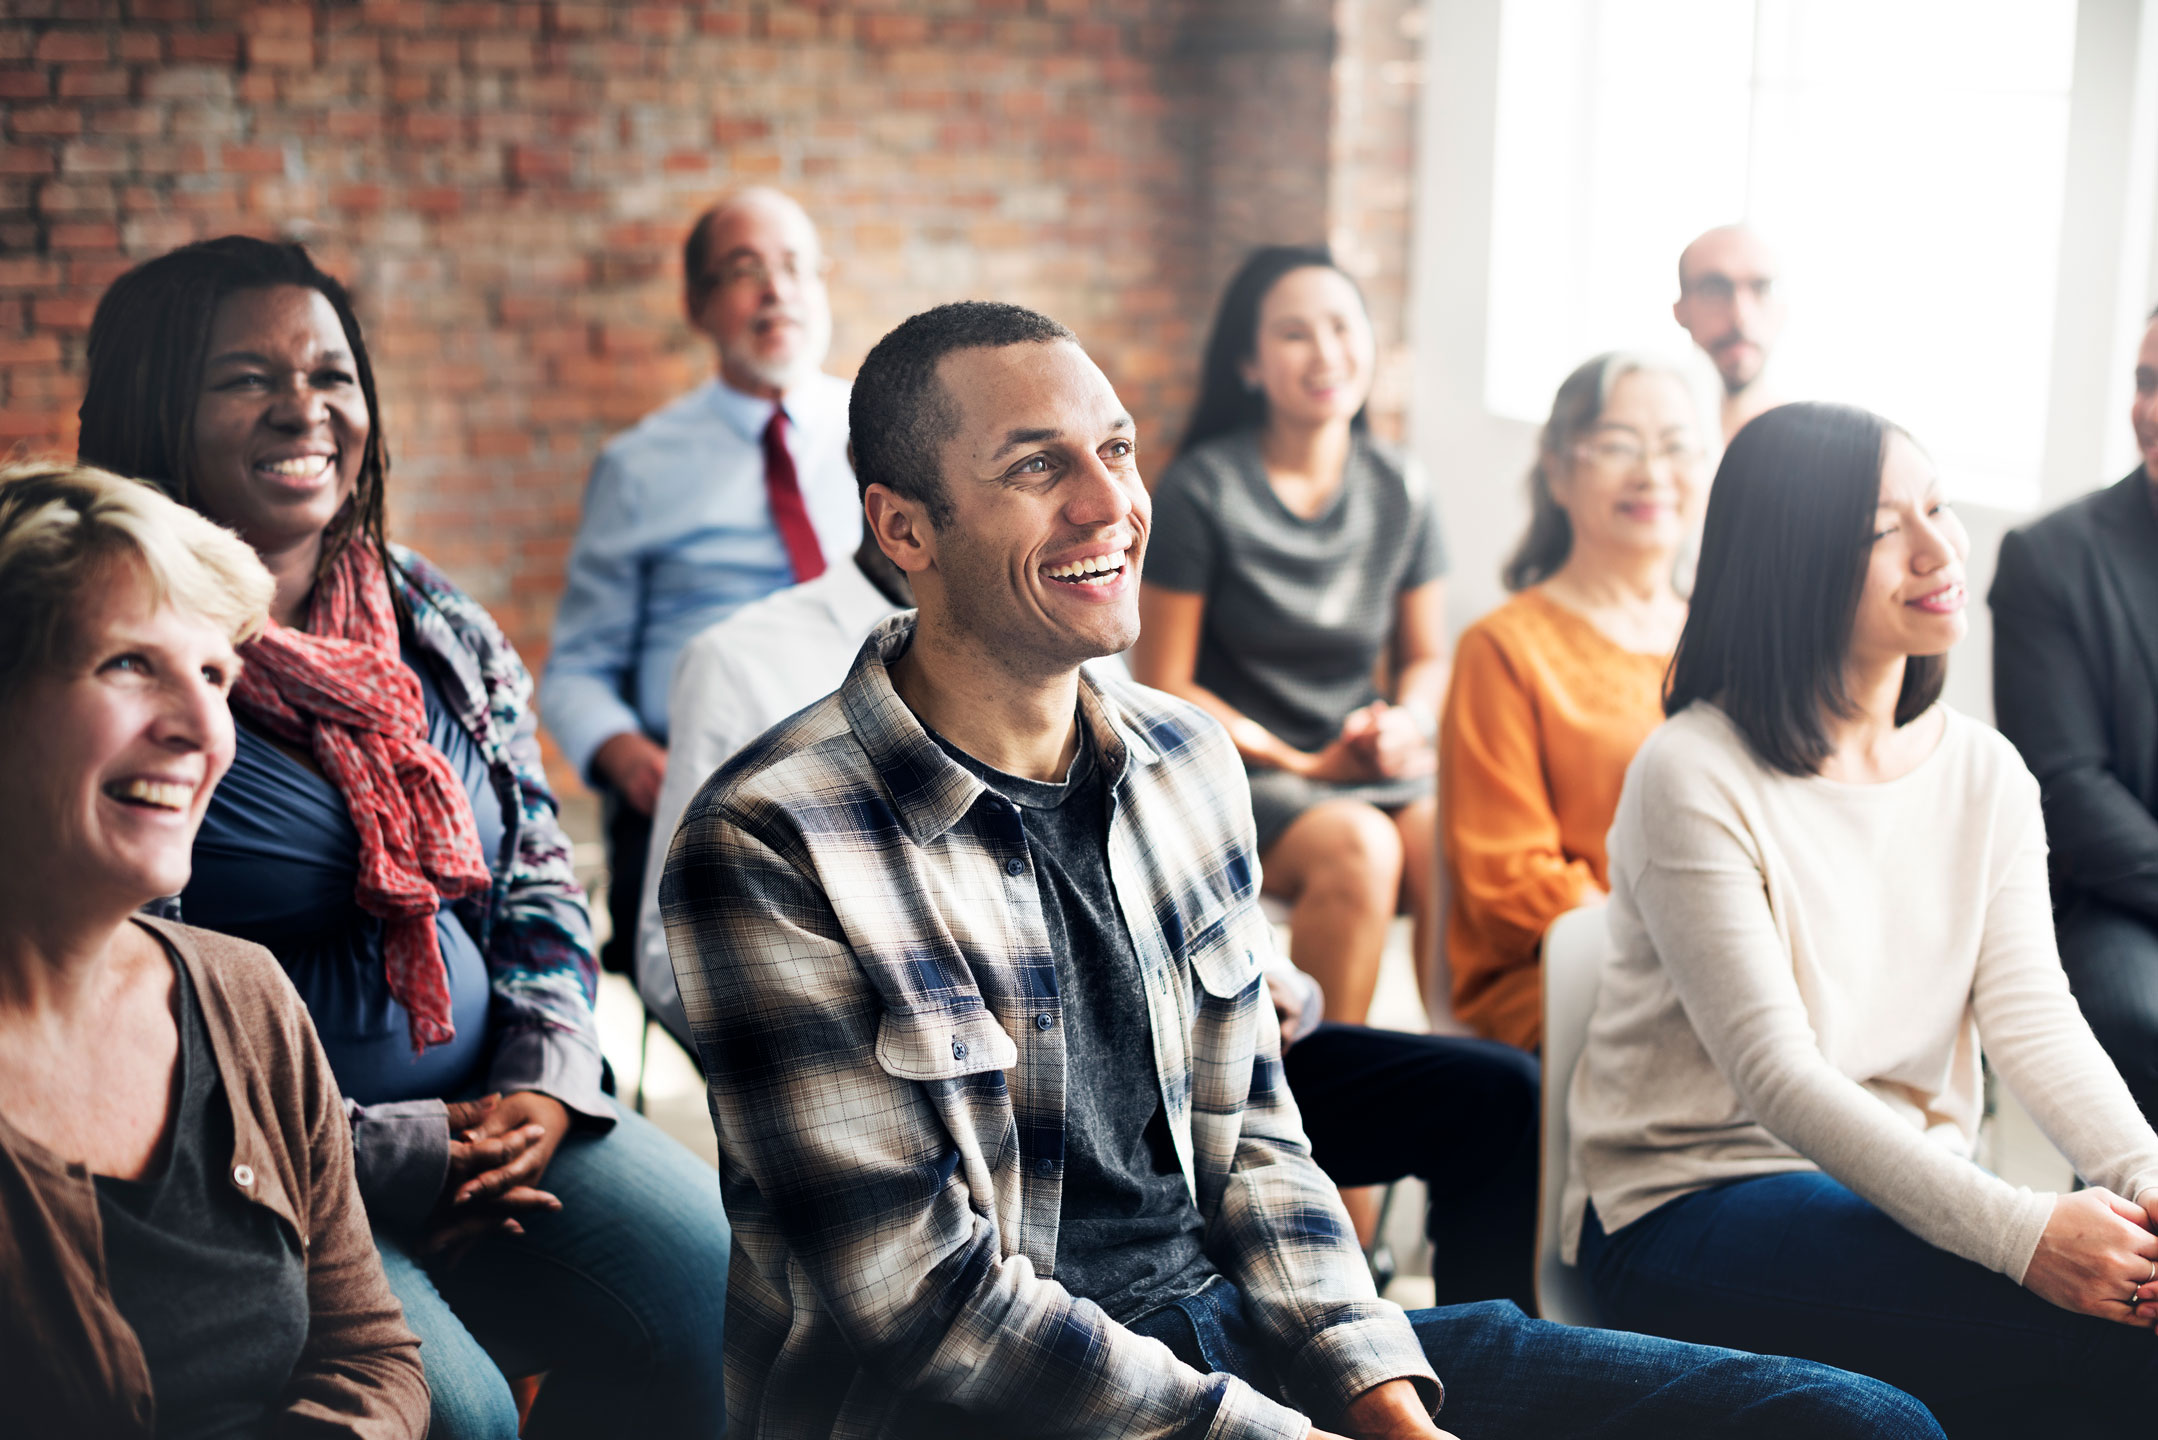 Education photo of group of people listening to a presentation and smiling